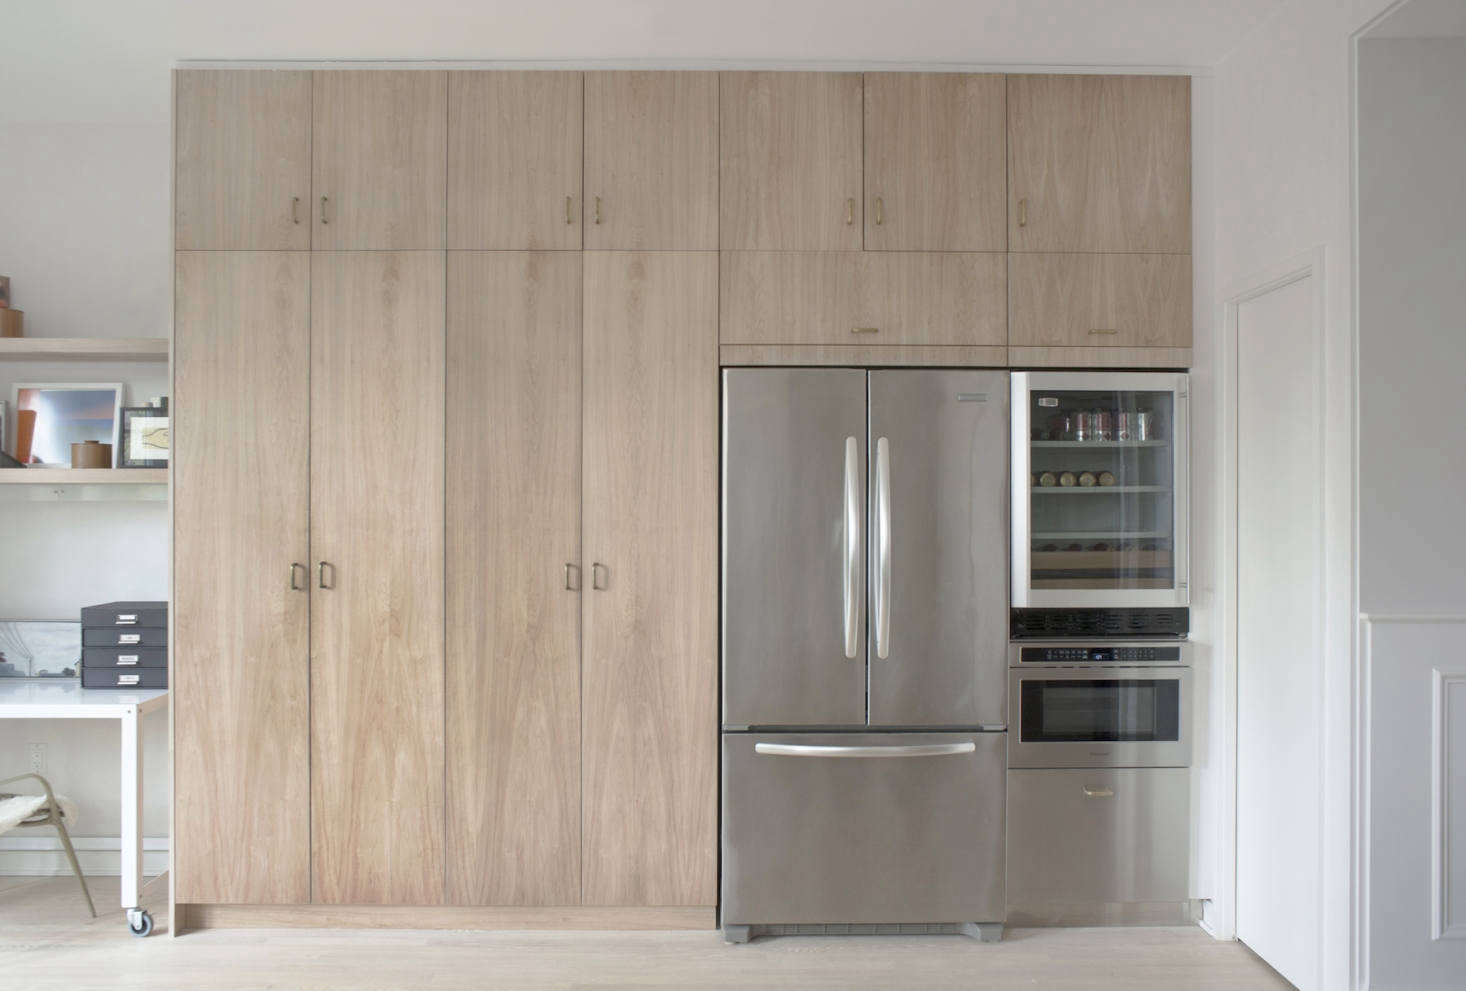 The clients wanted more storage in their new kitchen than they had previously, so Fowlkes